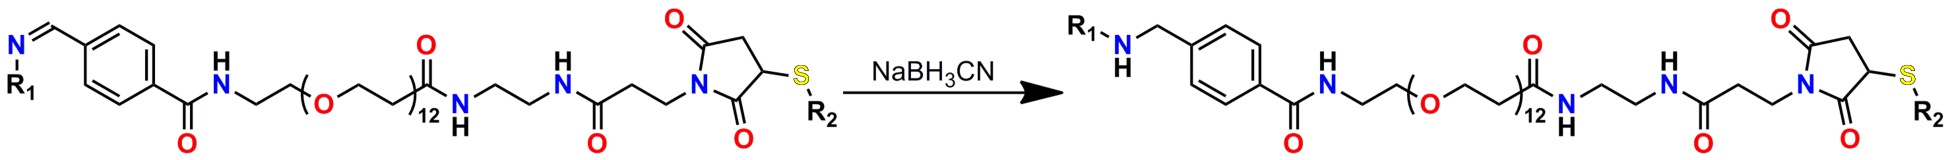 Figure 9 shows the reduction of an imine (Schiff base) to a secondary amine with sodium cyanoborohydride. The imine is from Figure 8. The maleimide is shown as having been reacted with a thiol; however, as noted in the text, this may not be required before reduction, if the reduction conditions are suitably mild.